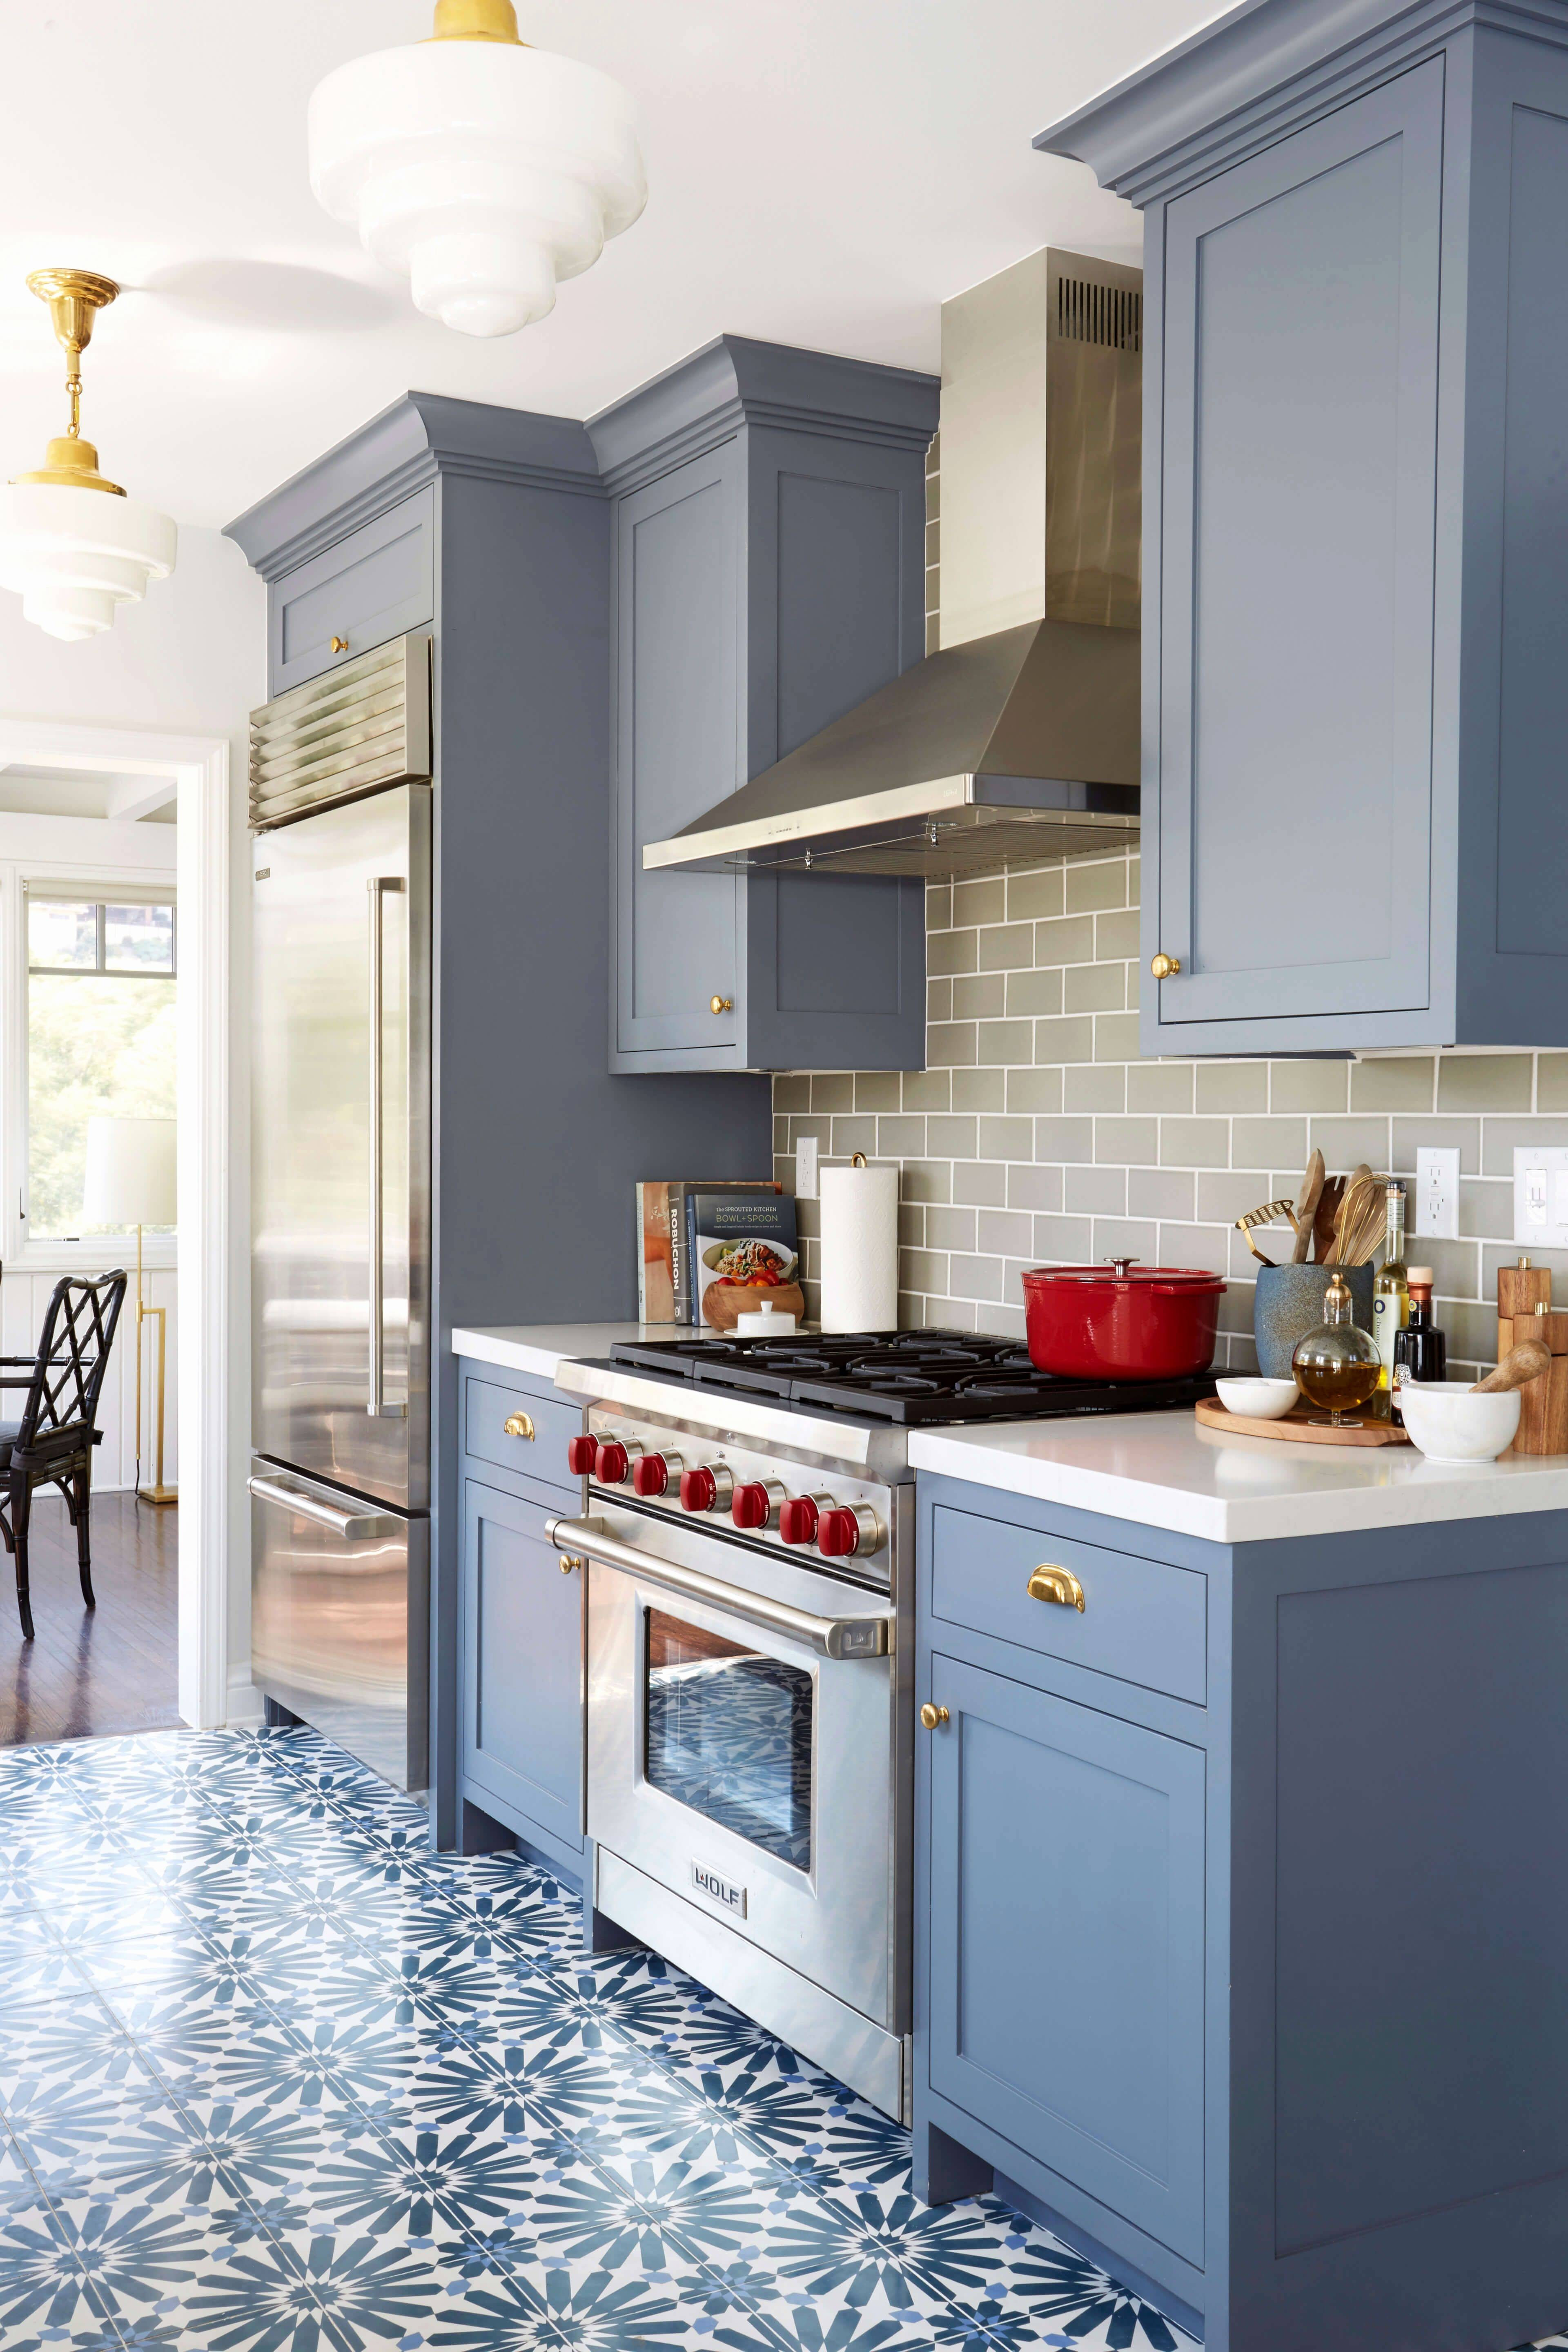 hardwood floor color with white cabinets of 14 best of gray hardwood floors image dizpos com in gray hardwood floors best of kitchens with white cabinets and gray wood floors luxury kitchen image